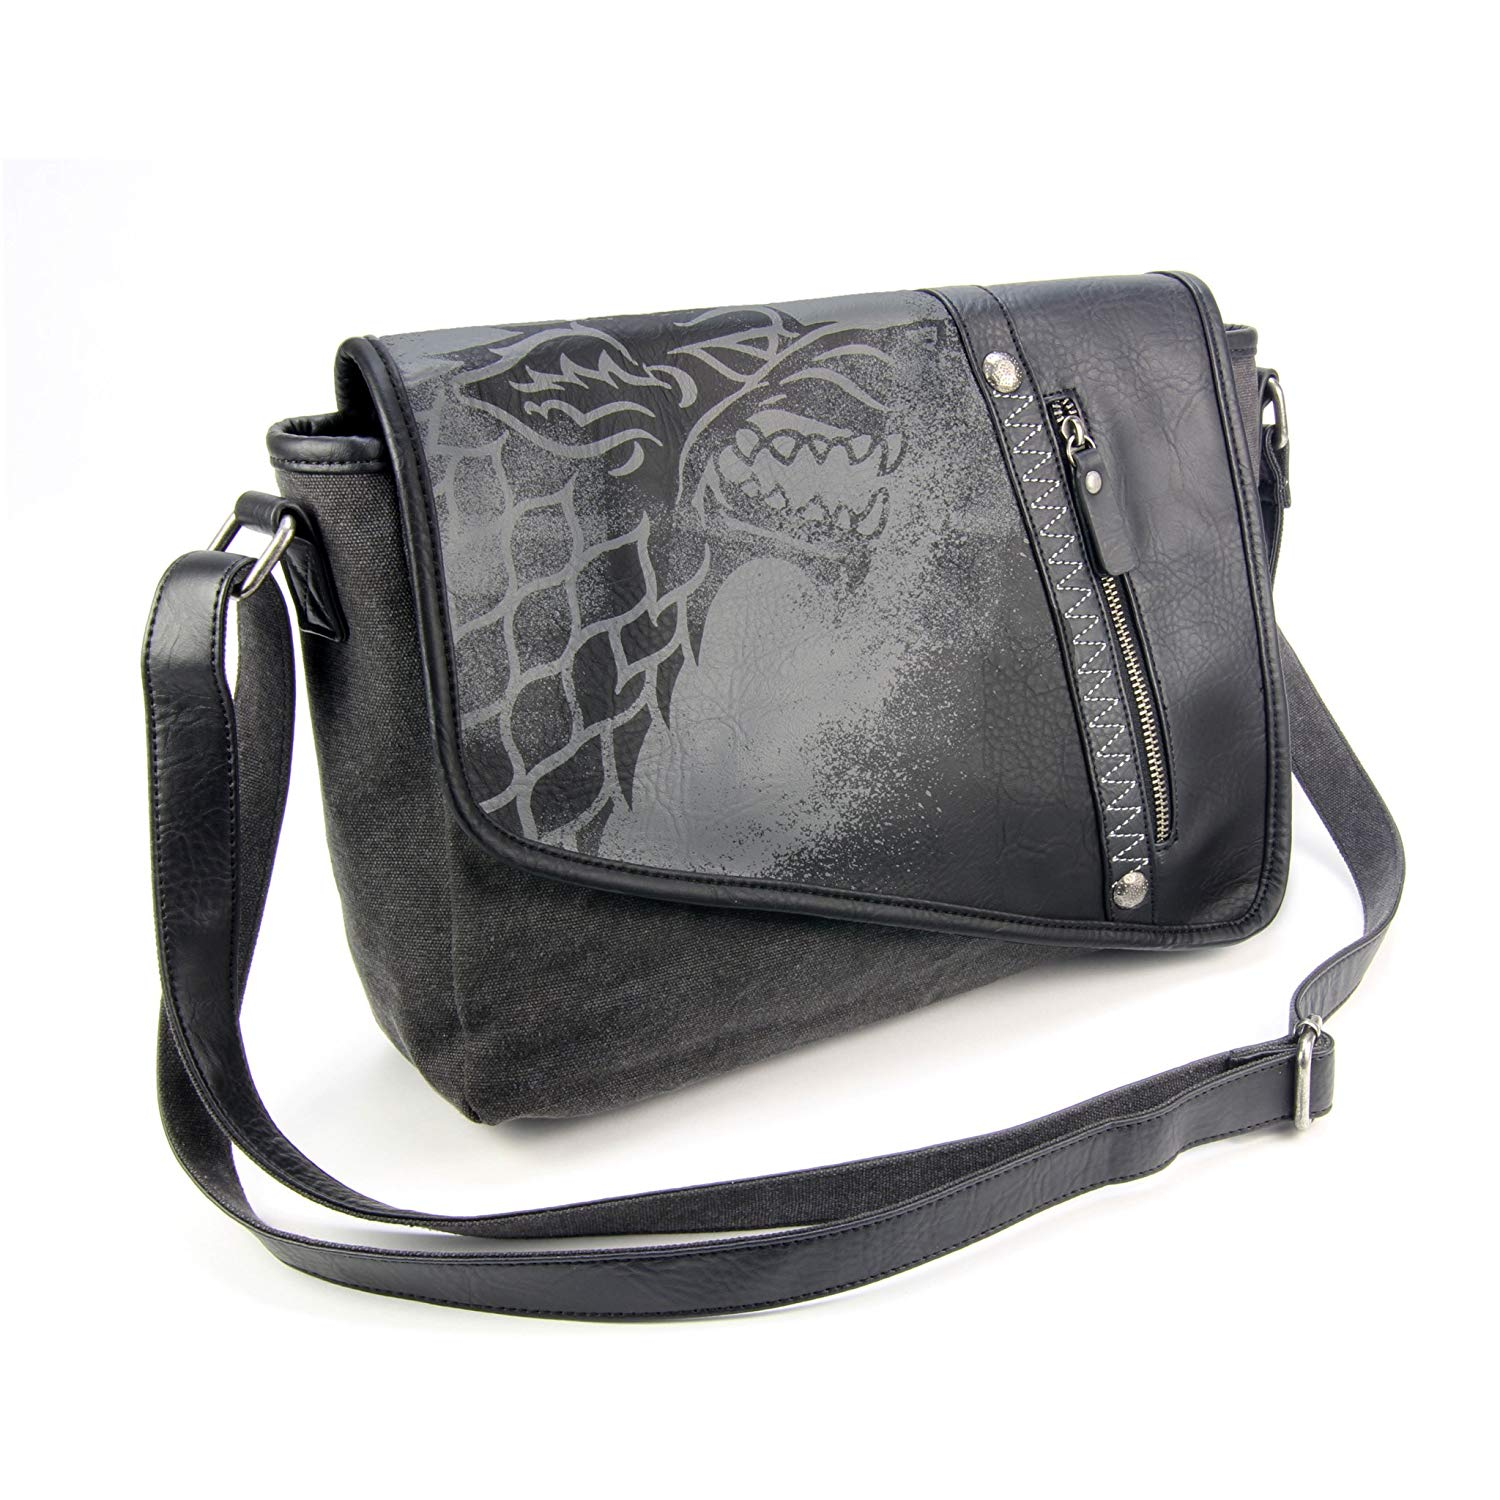 Le sac du messager des Stark dans Game of Thrones